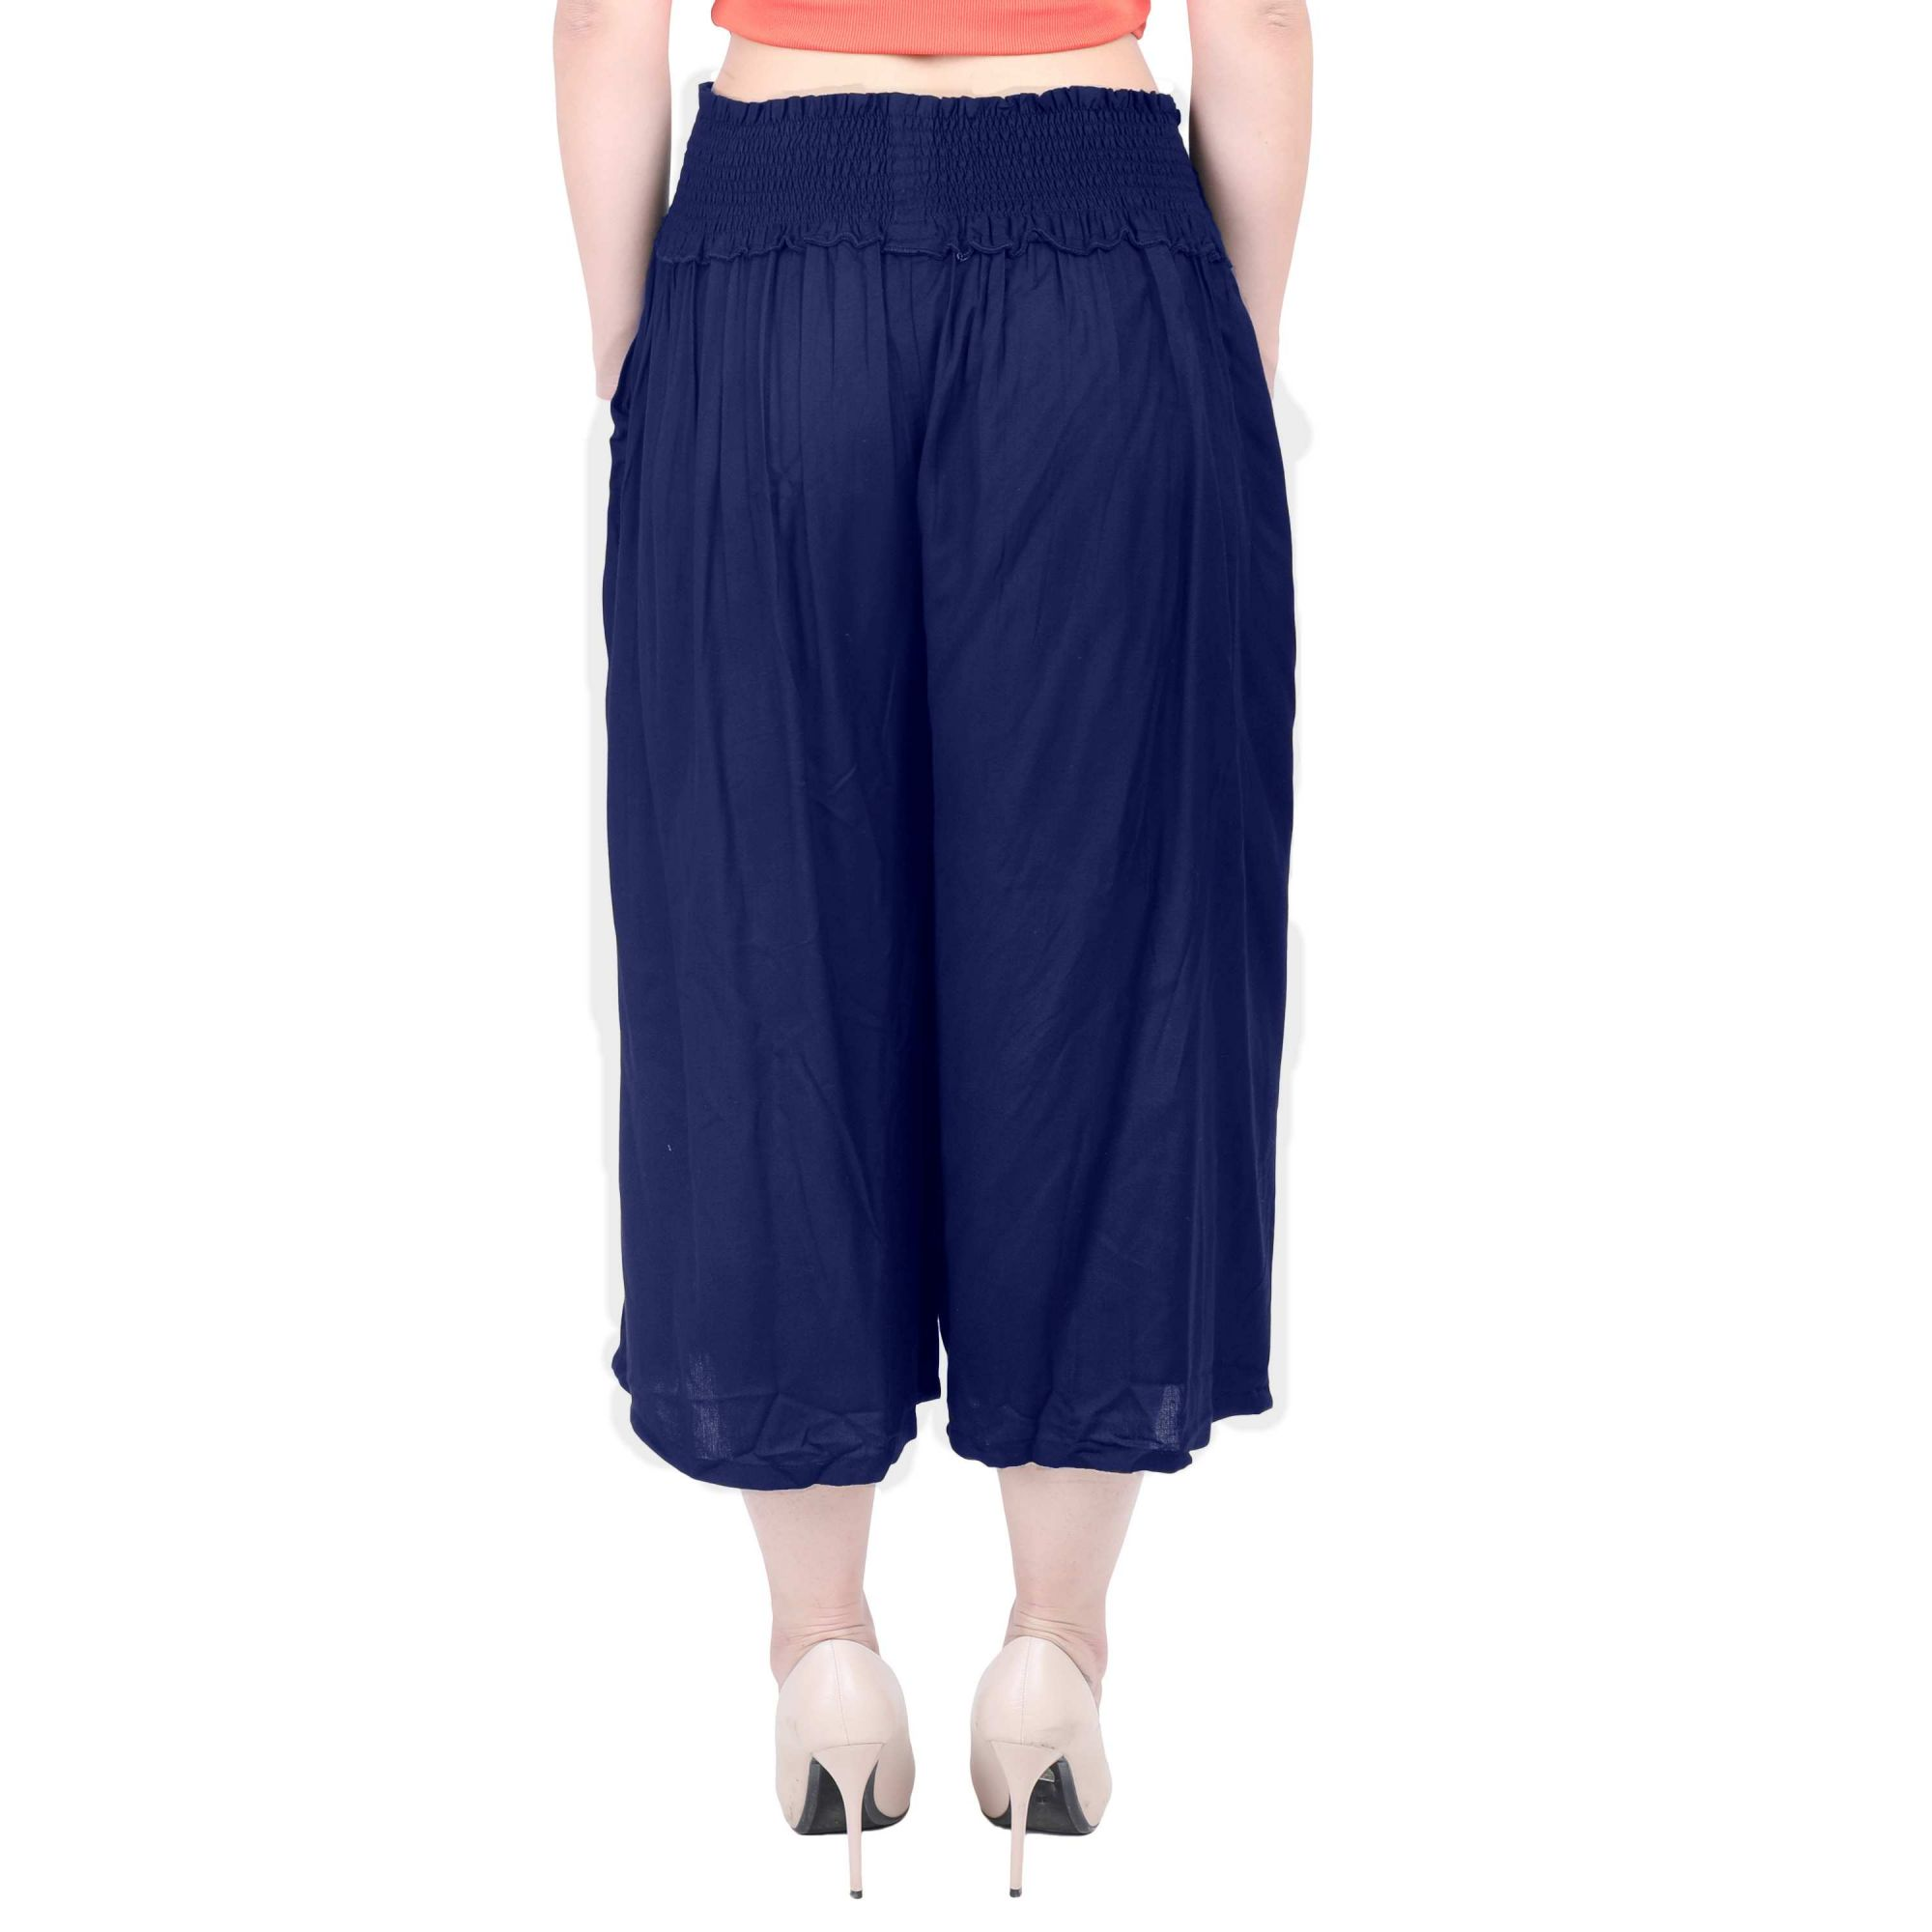 Embroidered Waist Capri Pant in Royal Blue